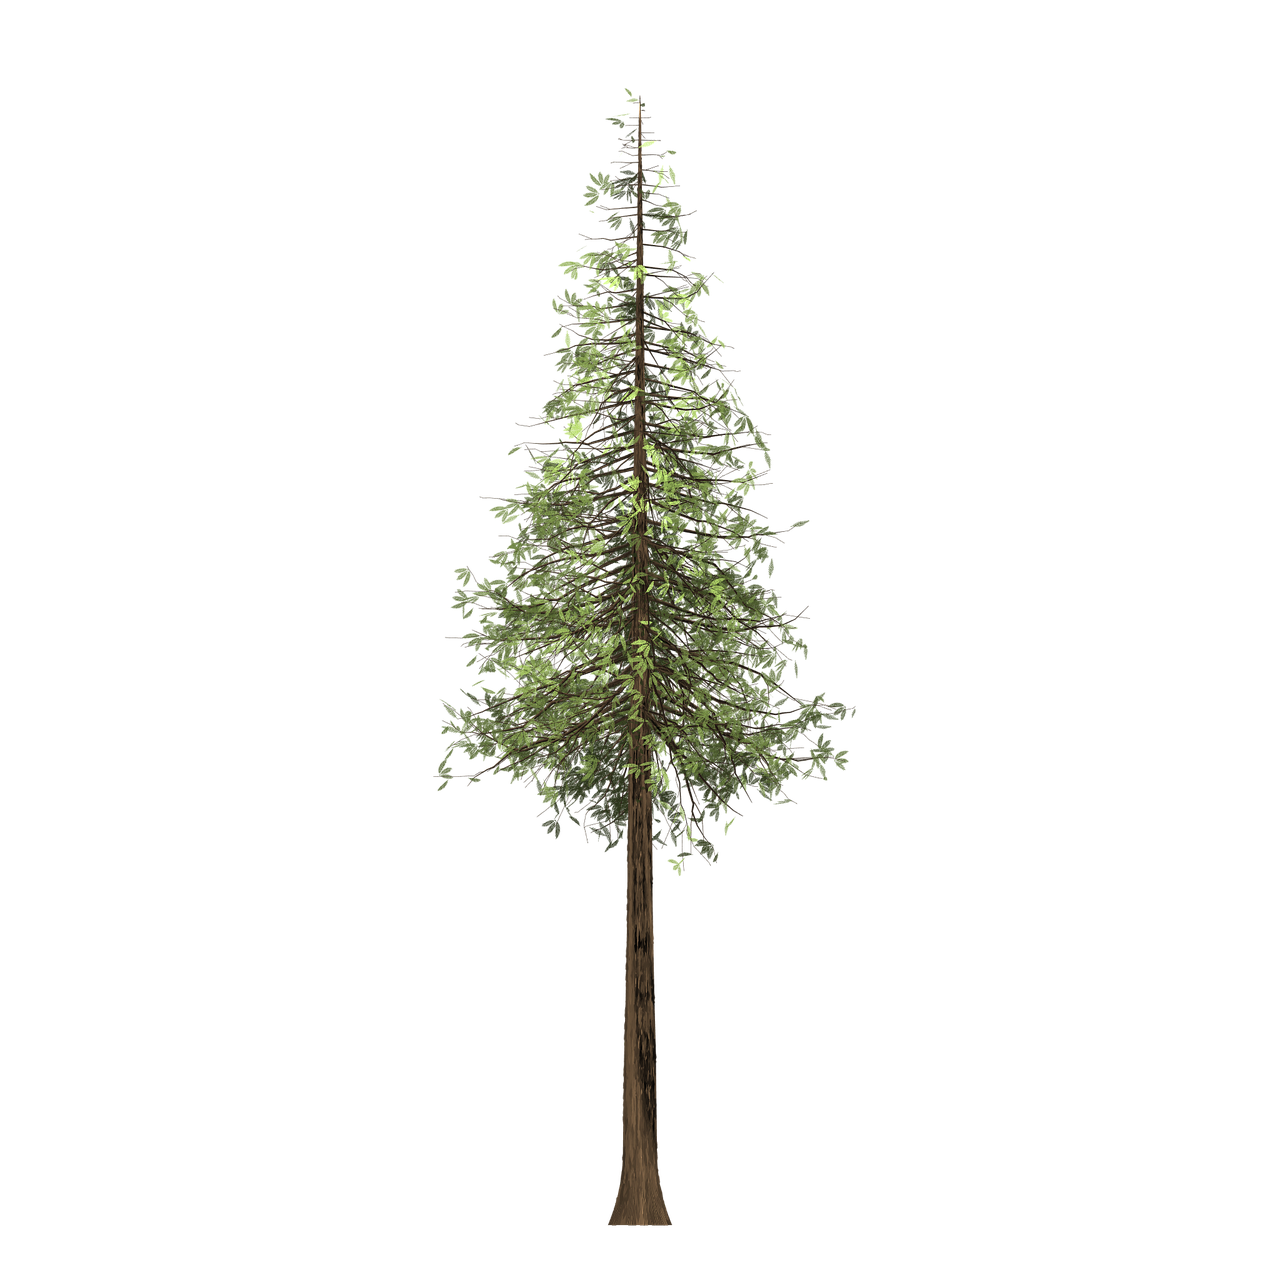 Forest Redwood Tree Painted Tree Green Nature Pla Forest Redwood Tree Painted Tree Green Nature Pla Redwood Tree Tree Care Tree Painting